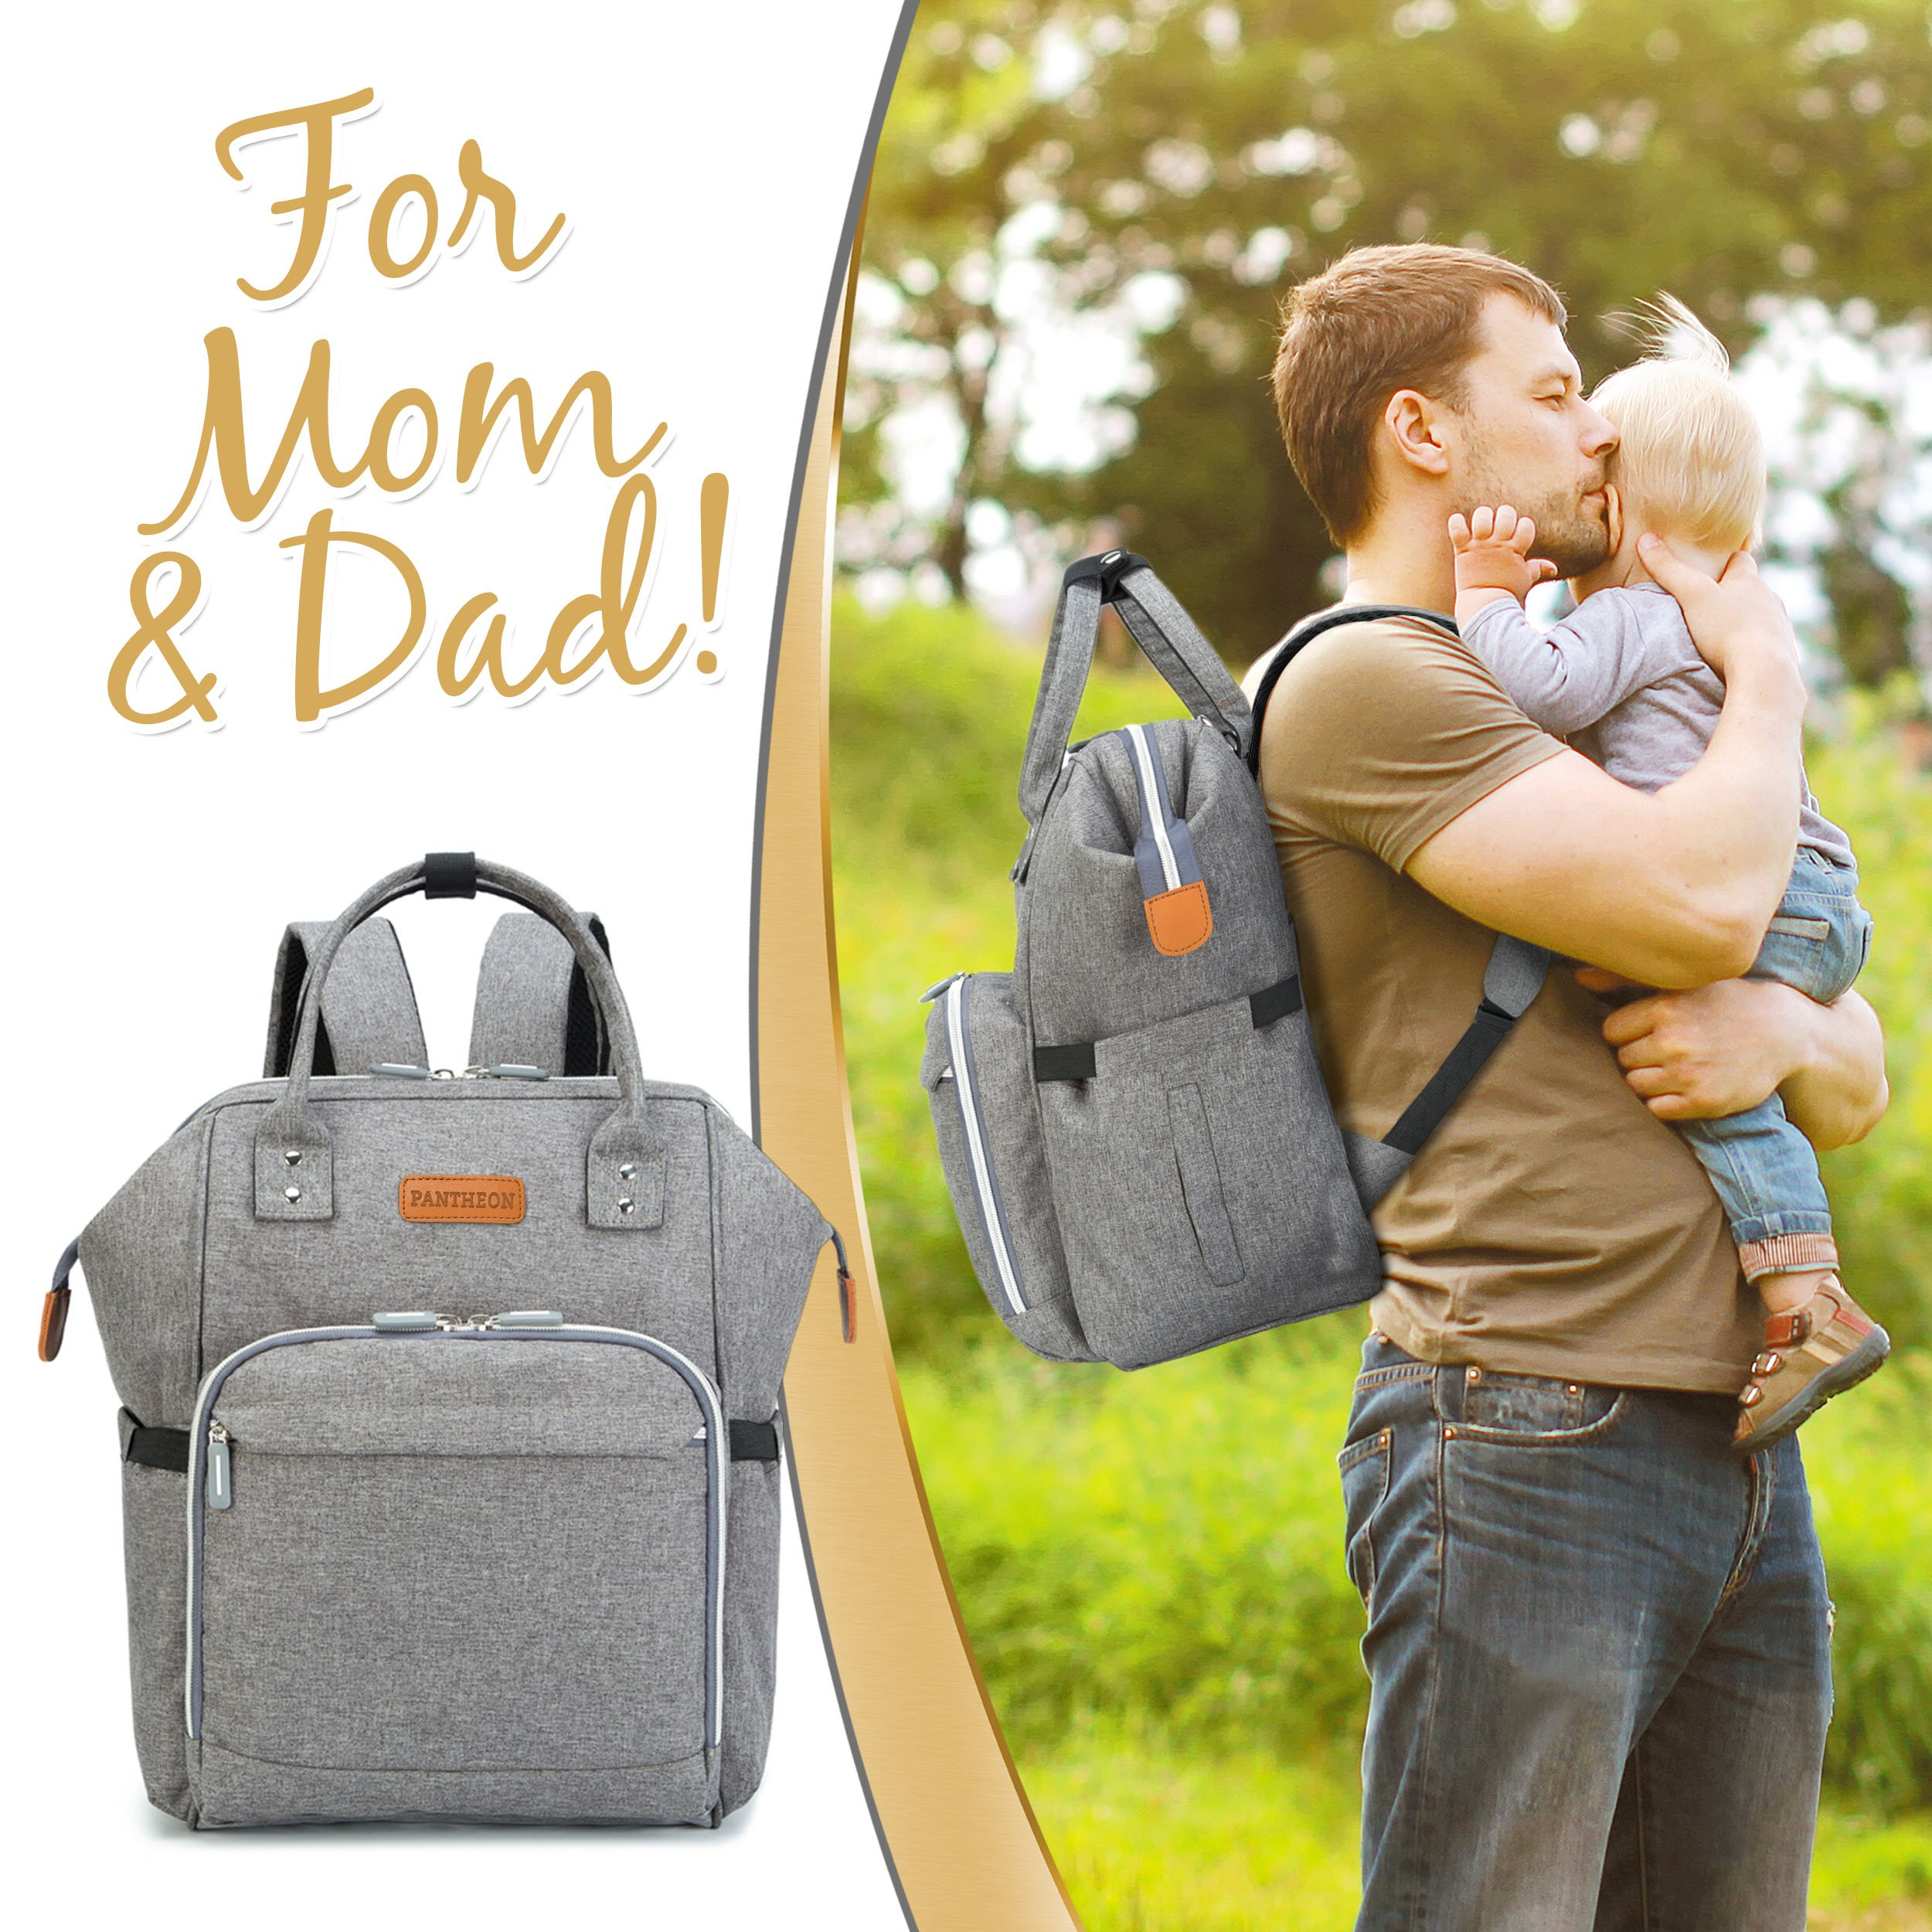 Diaper Bag Baby Backpack with Changing Pad, Insulated Cooler Pocket for Bottle Storage, Stroller Straps, by Pantheon, Best Bags for Girl or Boy, Mom or Dad (Gray) by Pantheon (Image #7)